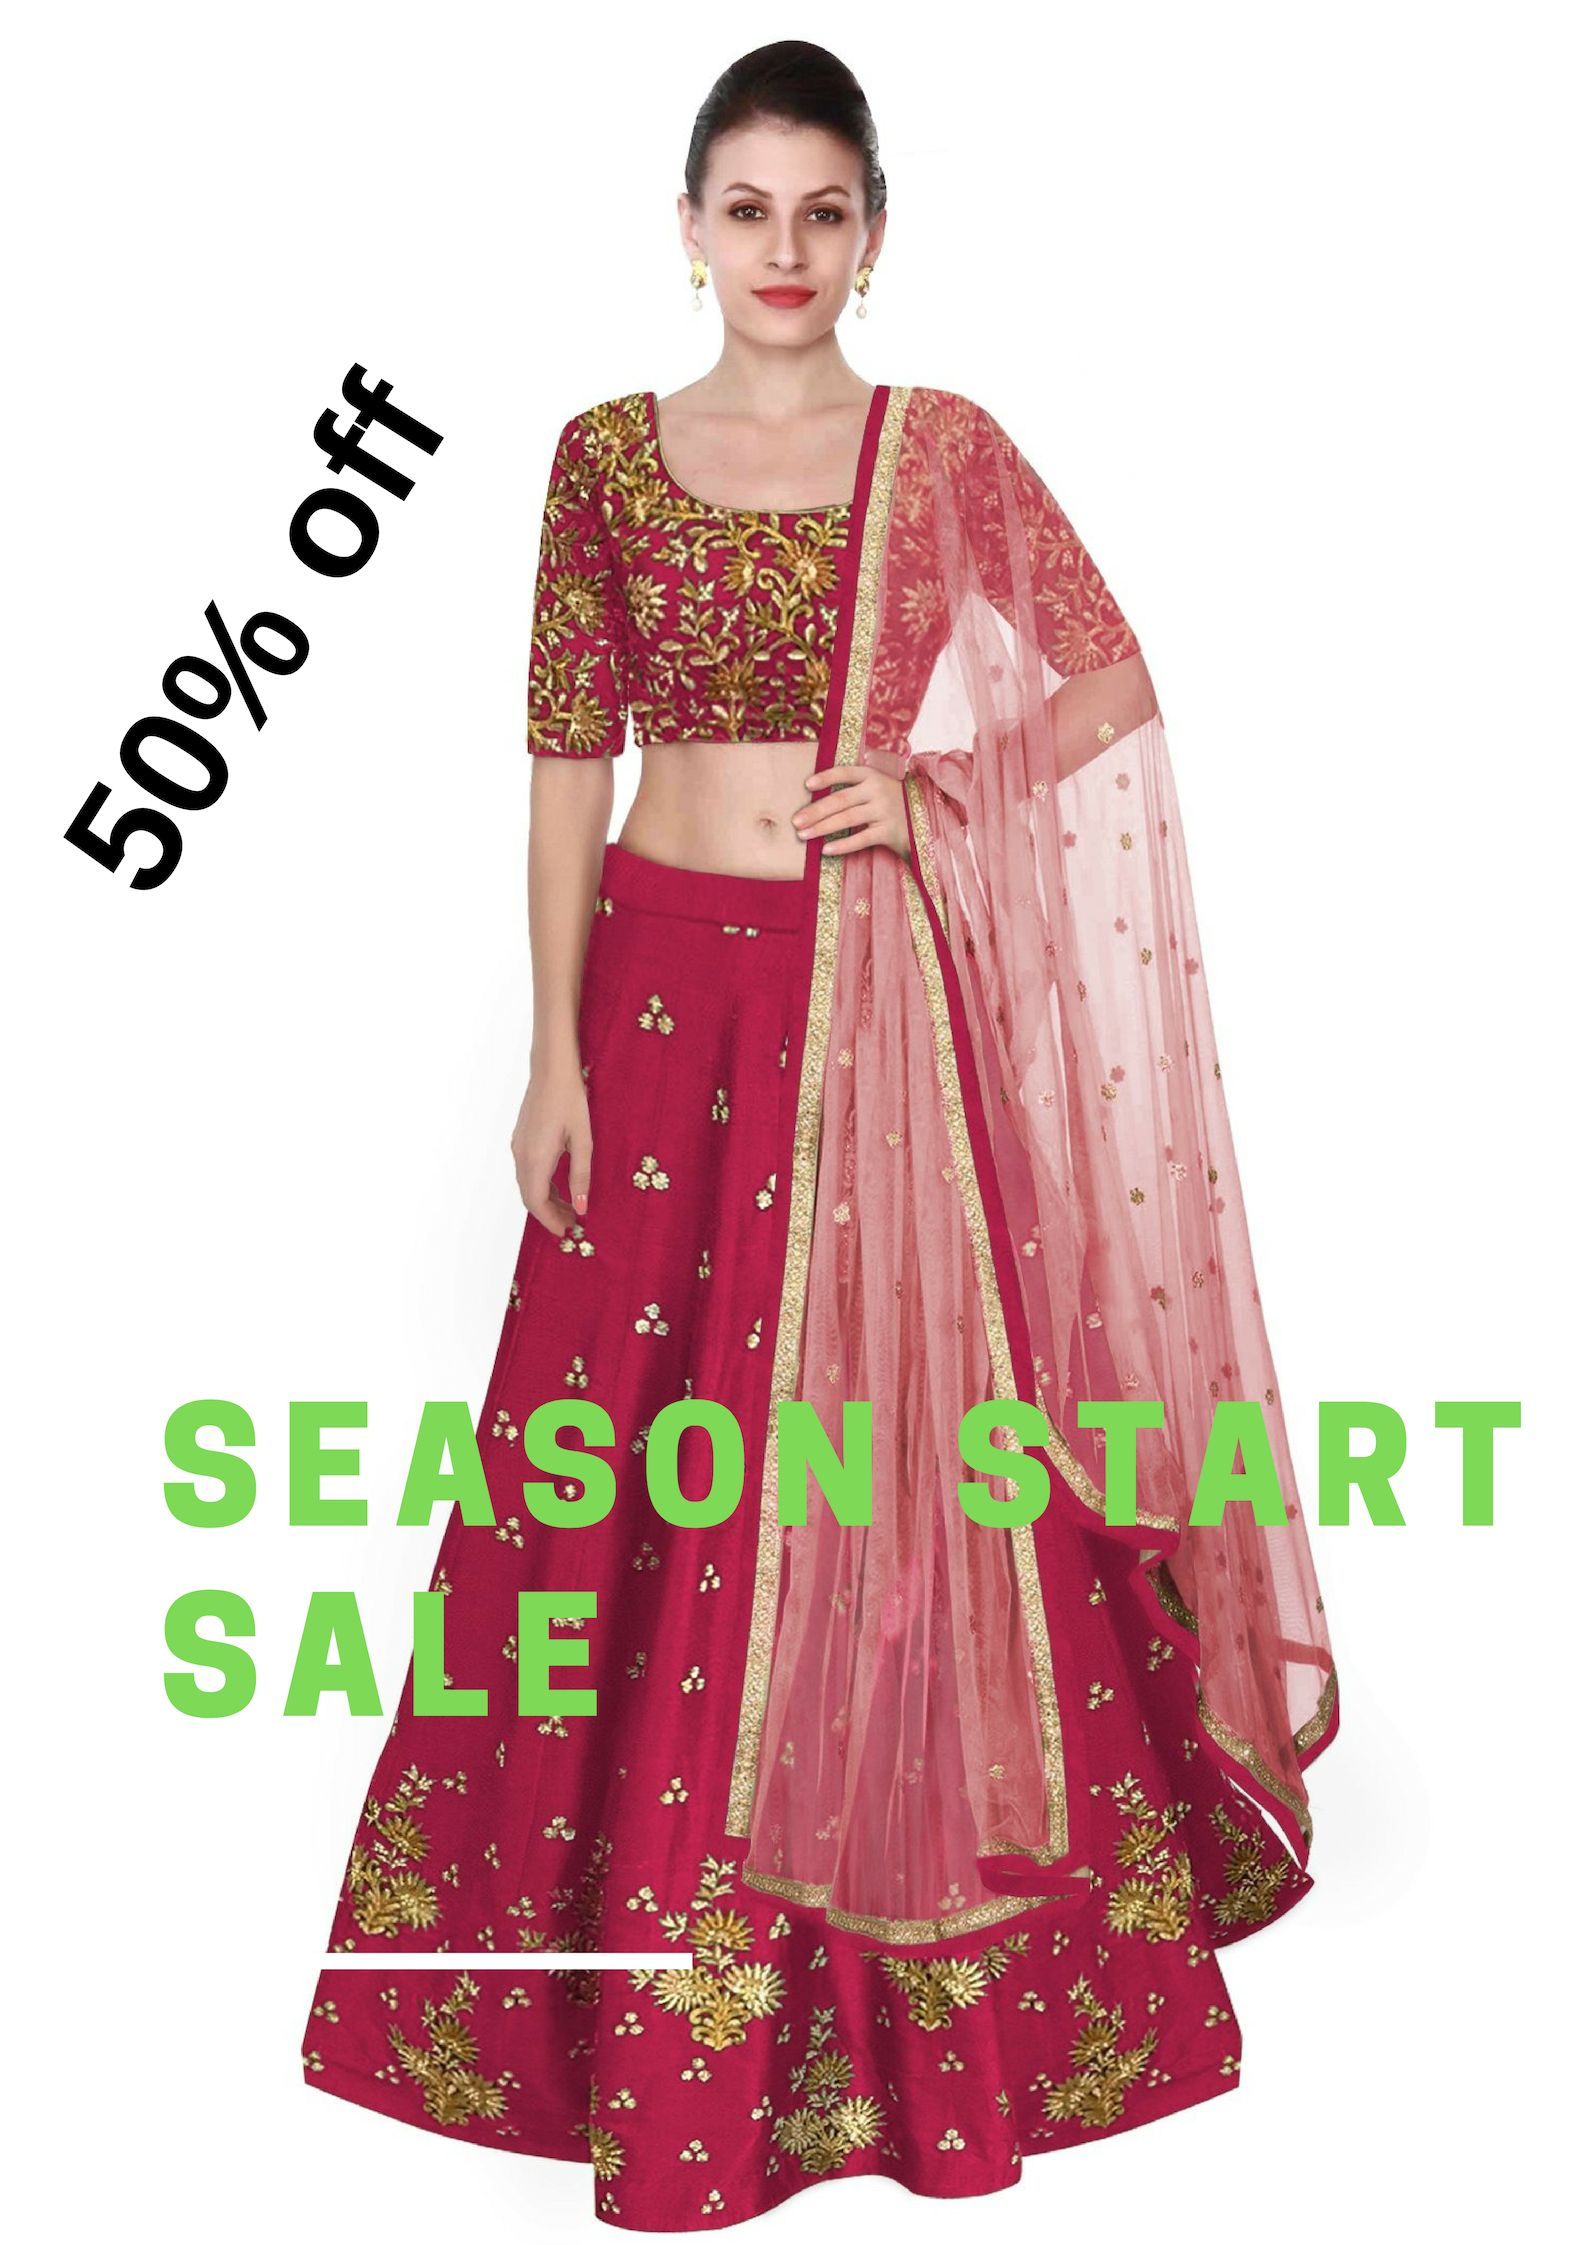 772c5a58a8 Lehenga Choli: Buy Indian Stylish Lehengas With Best Price @Pulvyboutiques  Indian Lehengas Online Shopping - Buy Lehenga Cholis at Best Price 3317 San  ...